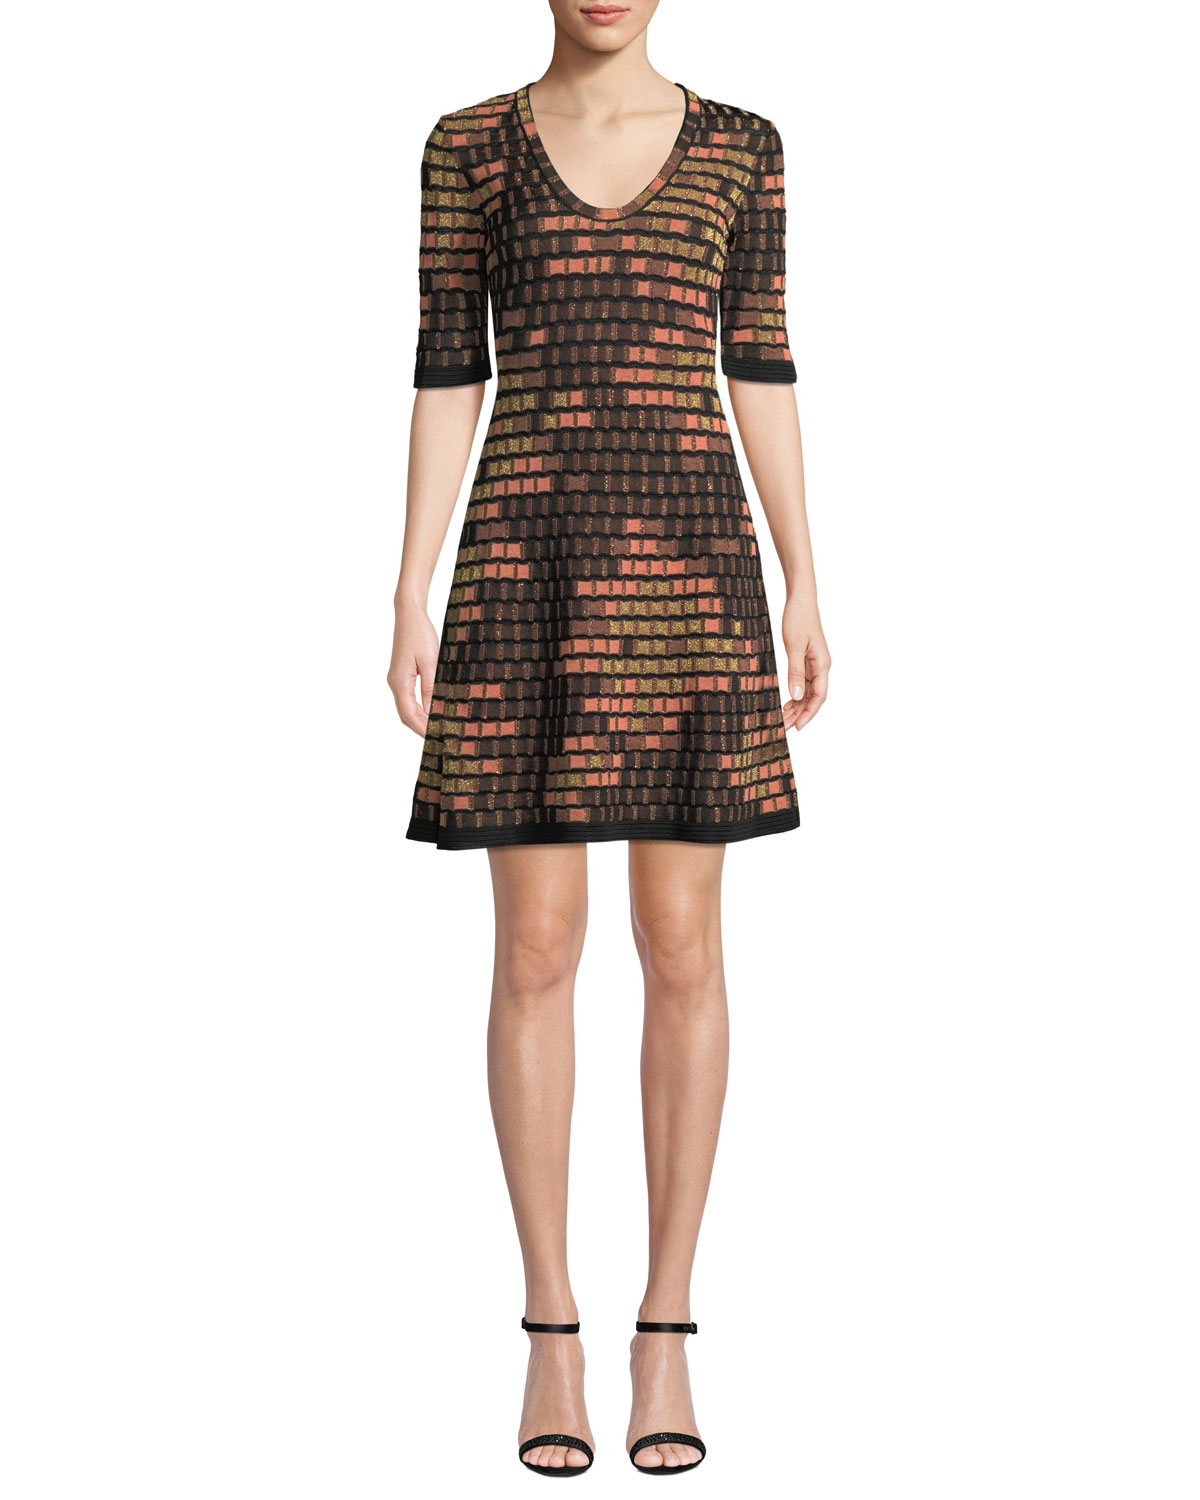 Short-Sleeve Short Geometric Jacquard Dress